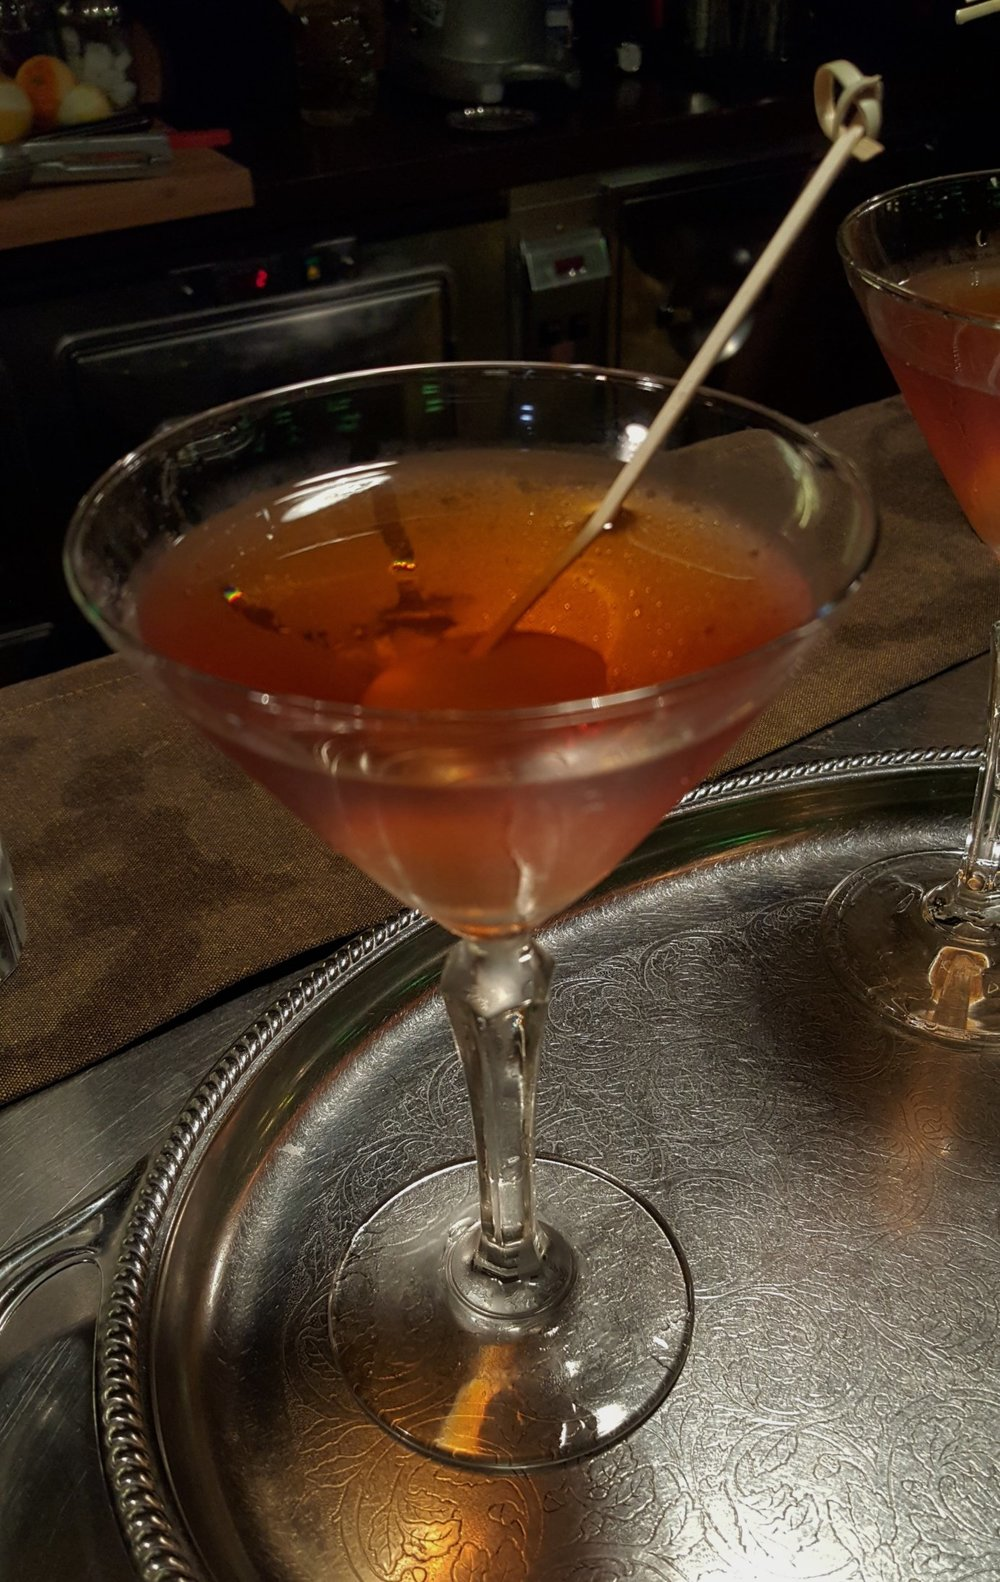 Tin whistle: Irish whiskey, assenzio, dry orange curaçao, maraschino, Angostura, oliva, limone